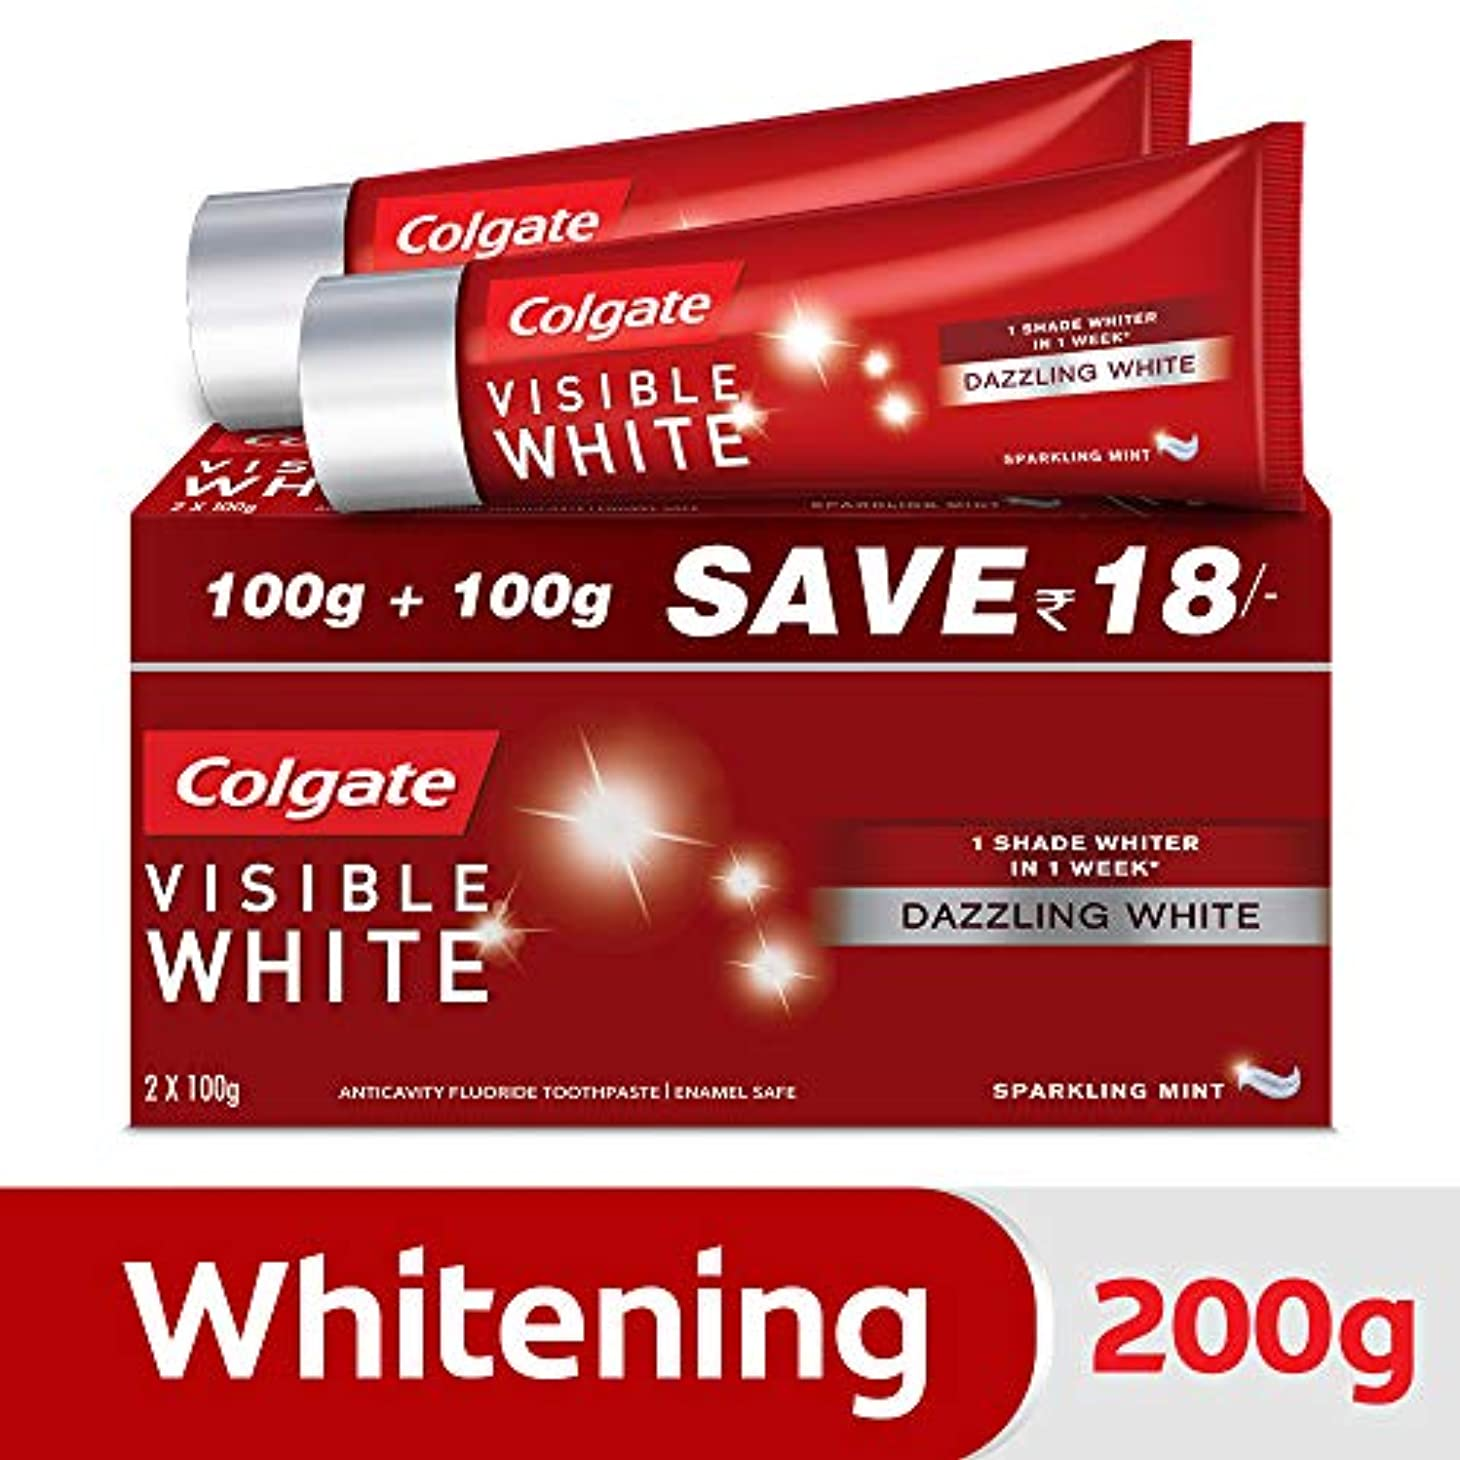 刈るアイロニー論理的にColgate Visible White Dazzling White Toothpaste, Sparkling Mint - 200gm (Pack of 2)